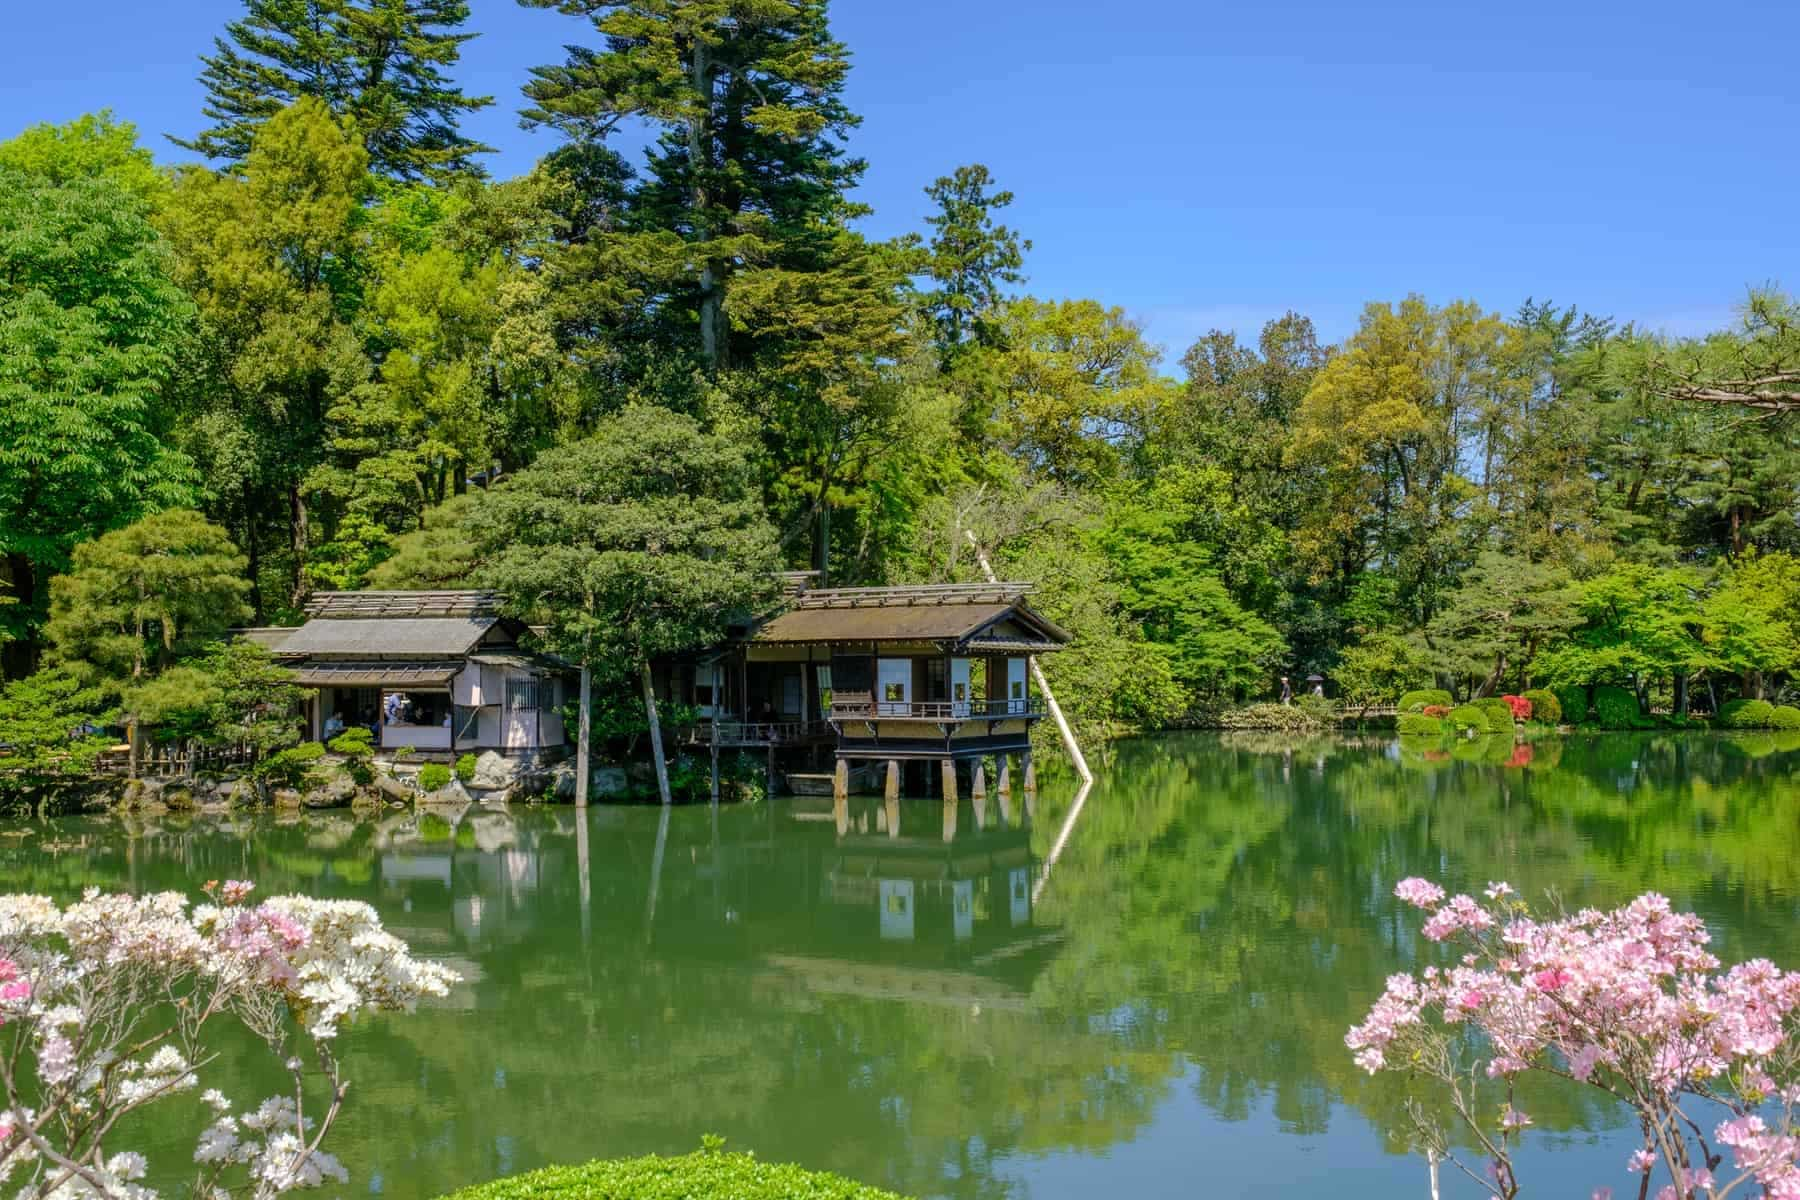 Pond and tea house in Kenrokuen, a japanese garden in Kanazawa, Ishikawa prefecture, Japan